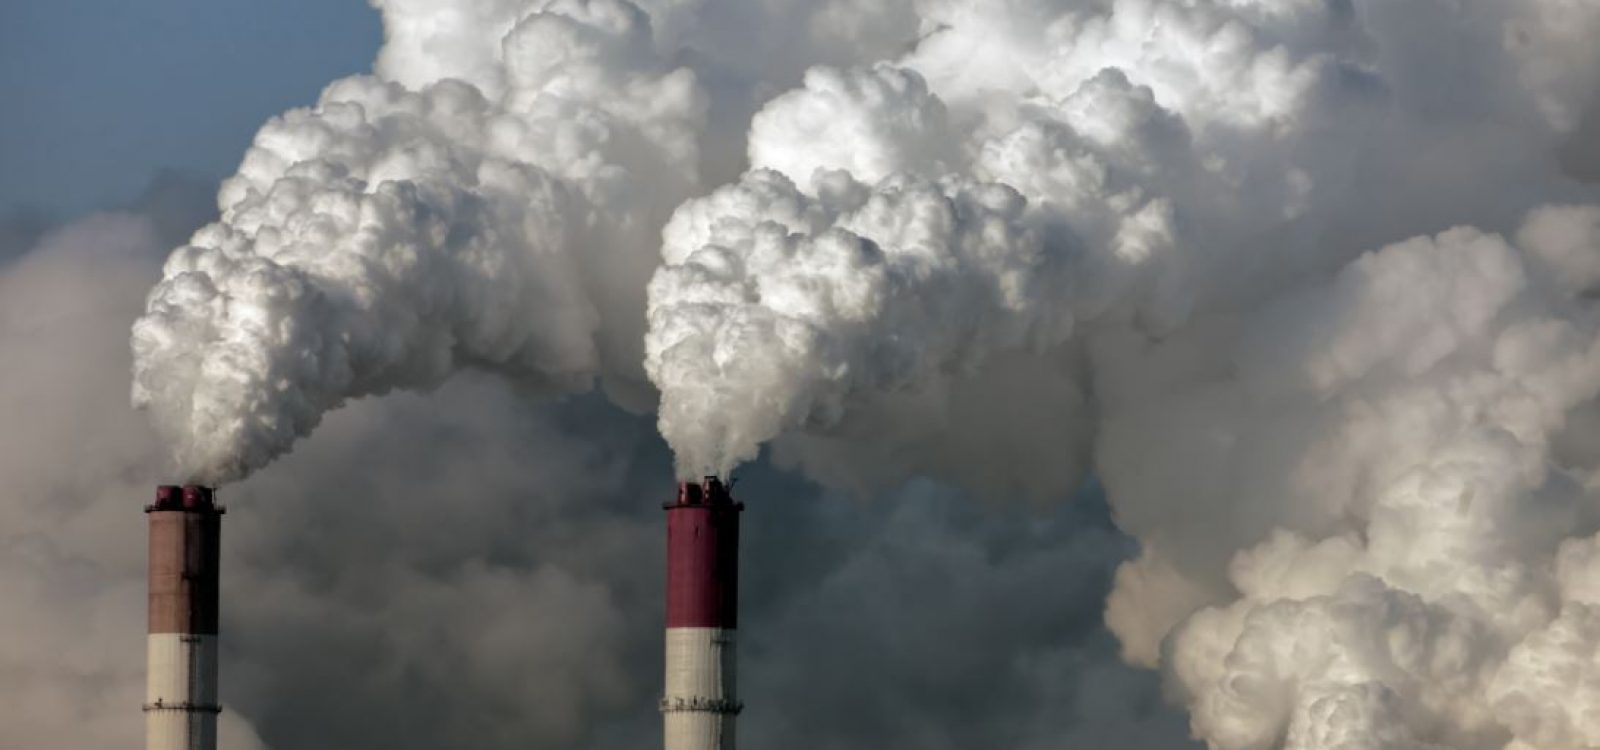 Report challenges debate on climate change versus economic growth